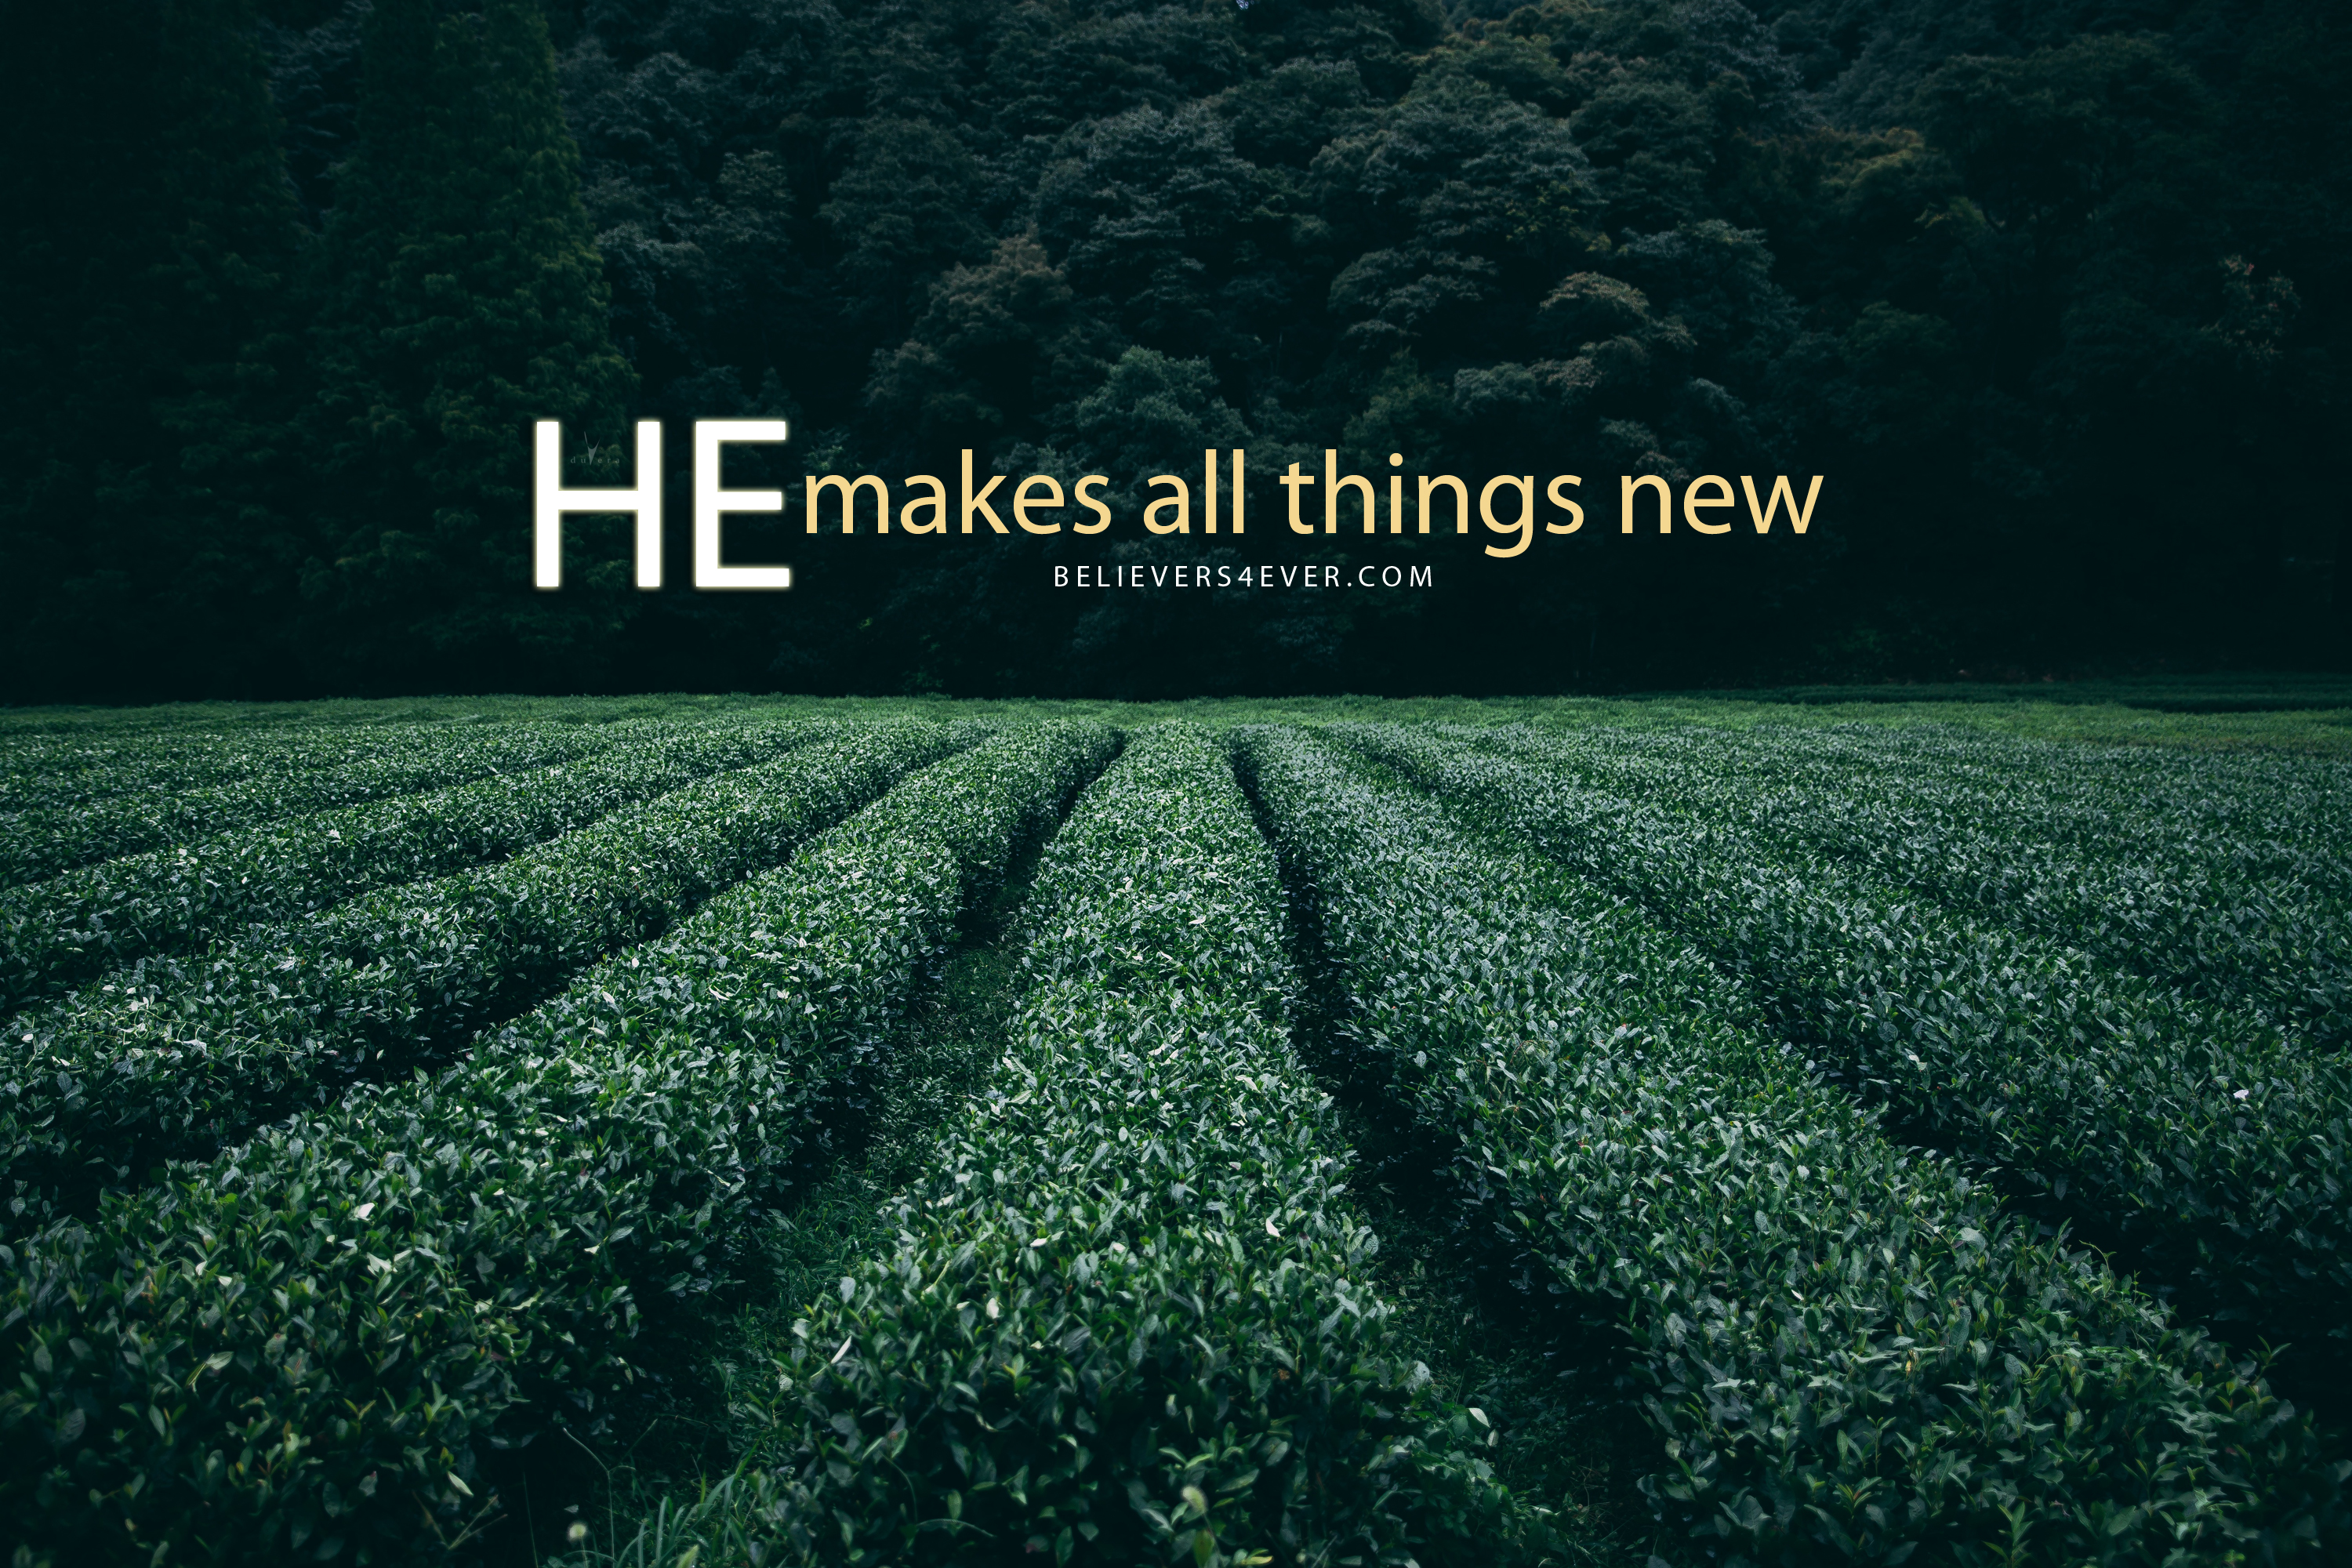 He makes all things new   Believers4evercom 3000x2000